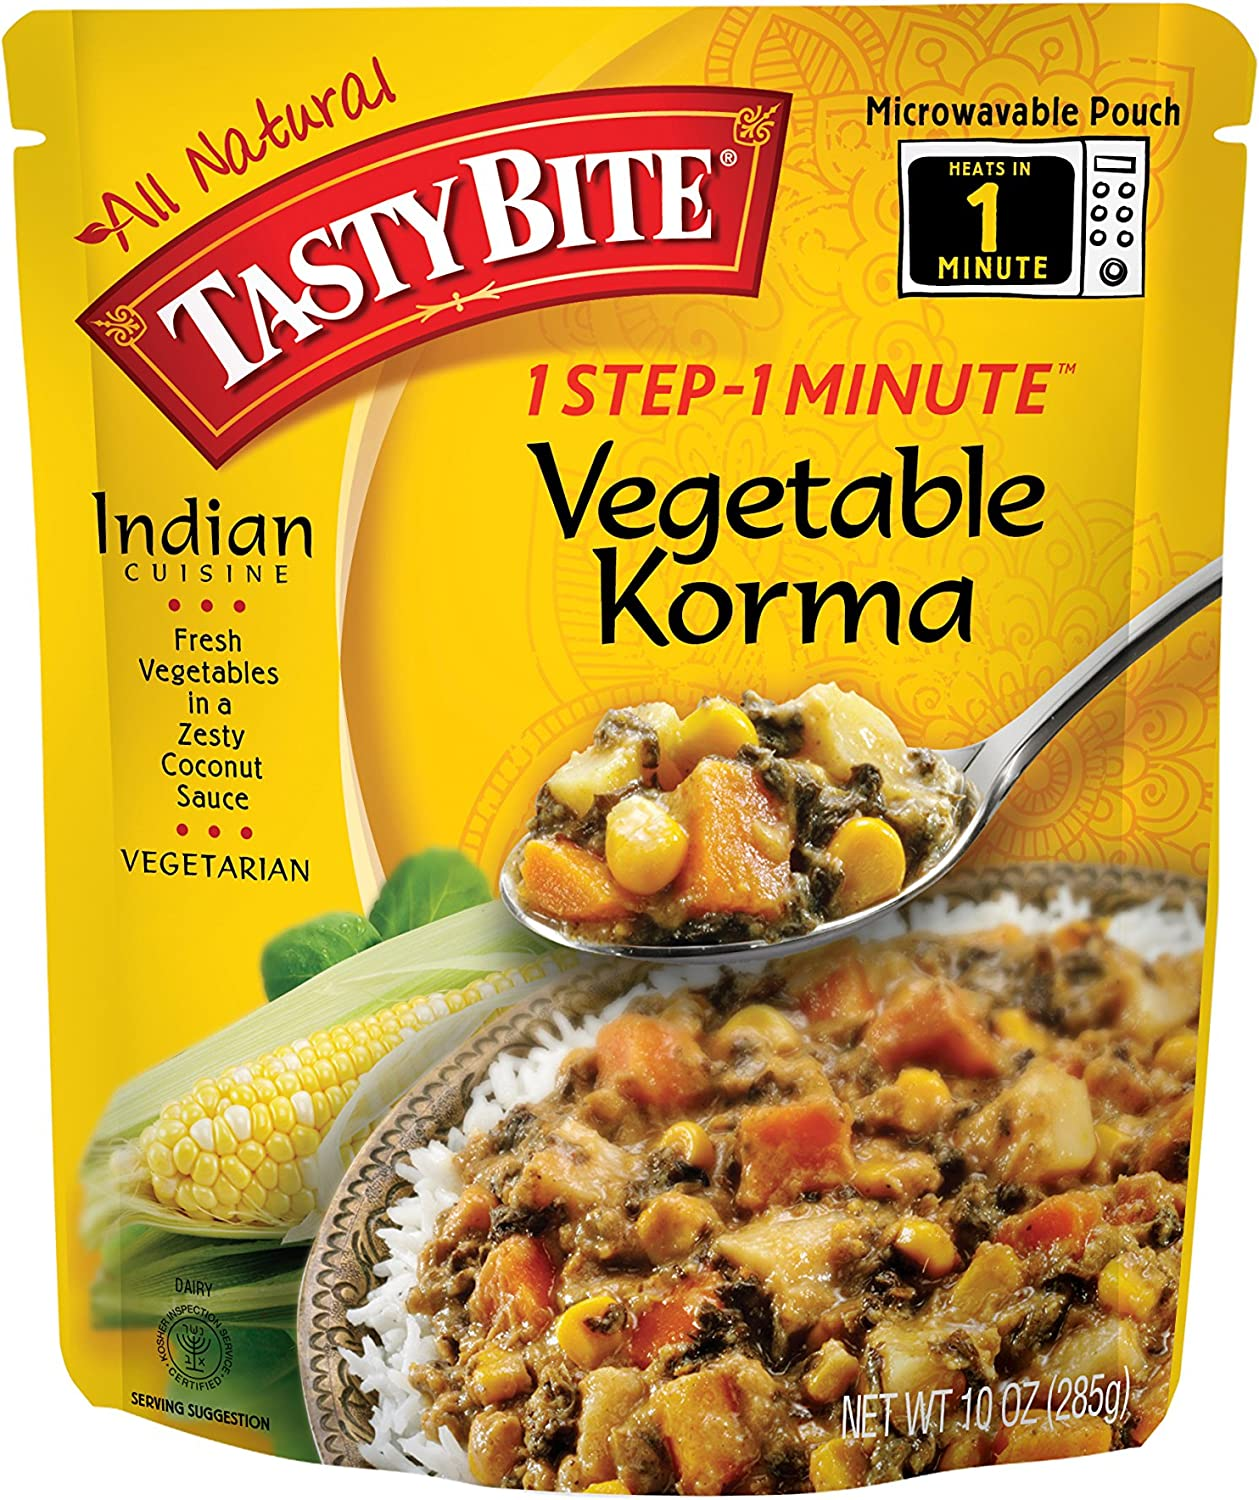 Tasty Bite gift Sale Special Price Vegetable Korma Entree Fully Indian Cooked 10 Ounce